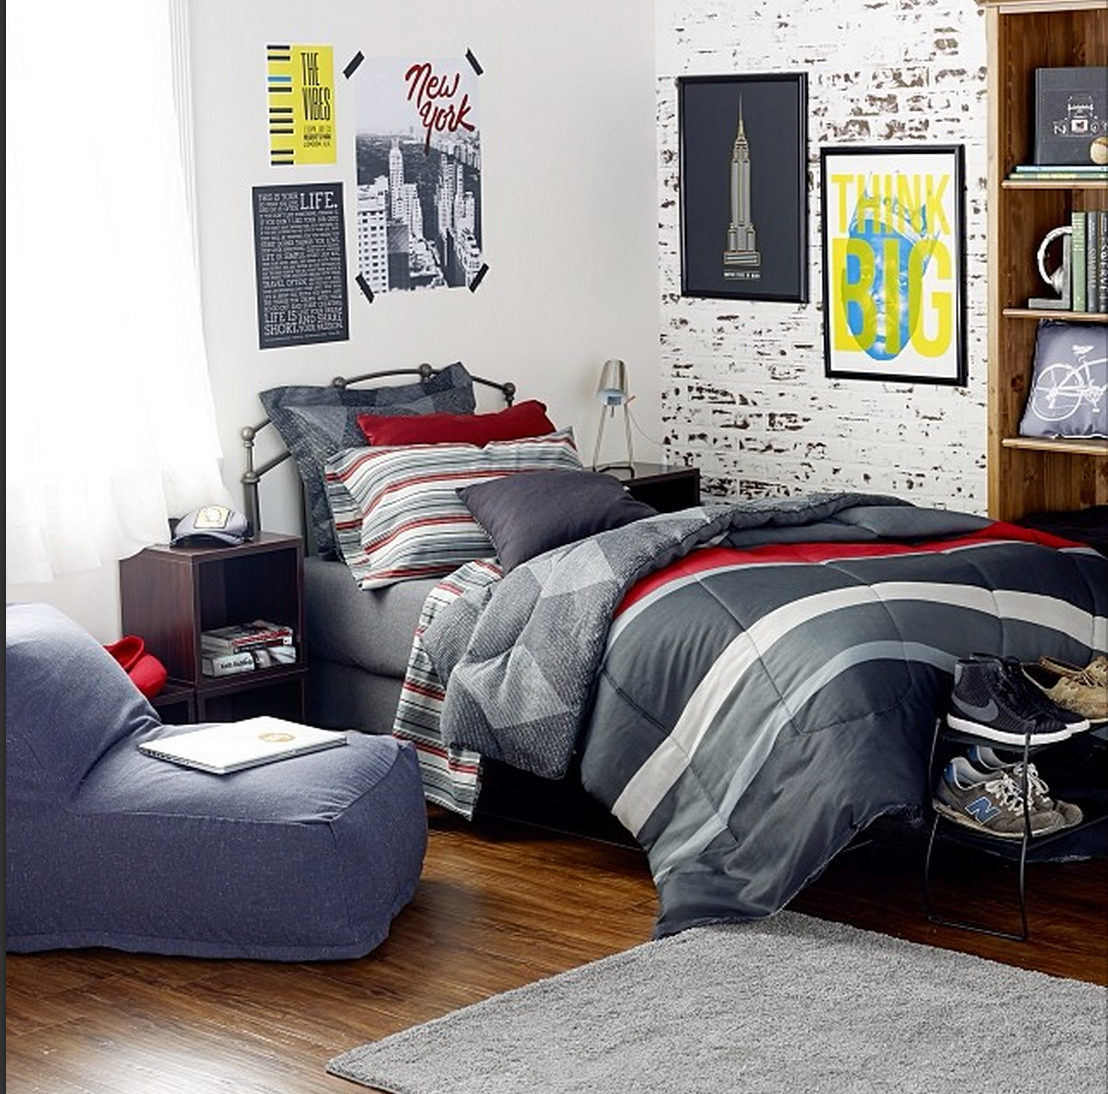 For Guys College Gifts For Him Dorm Decor Dormify Guy Dorm Rooms Boys Dorm Room Luxury Dorm Room